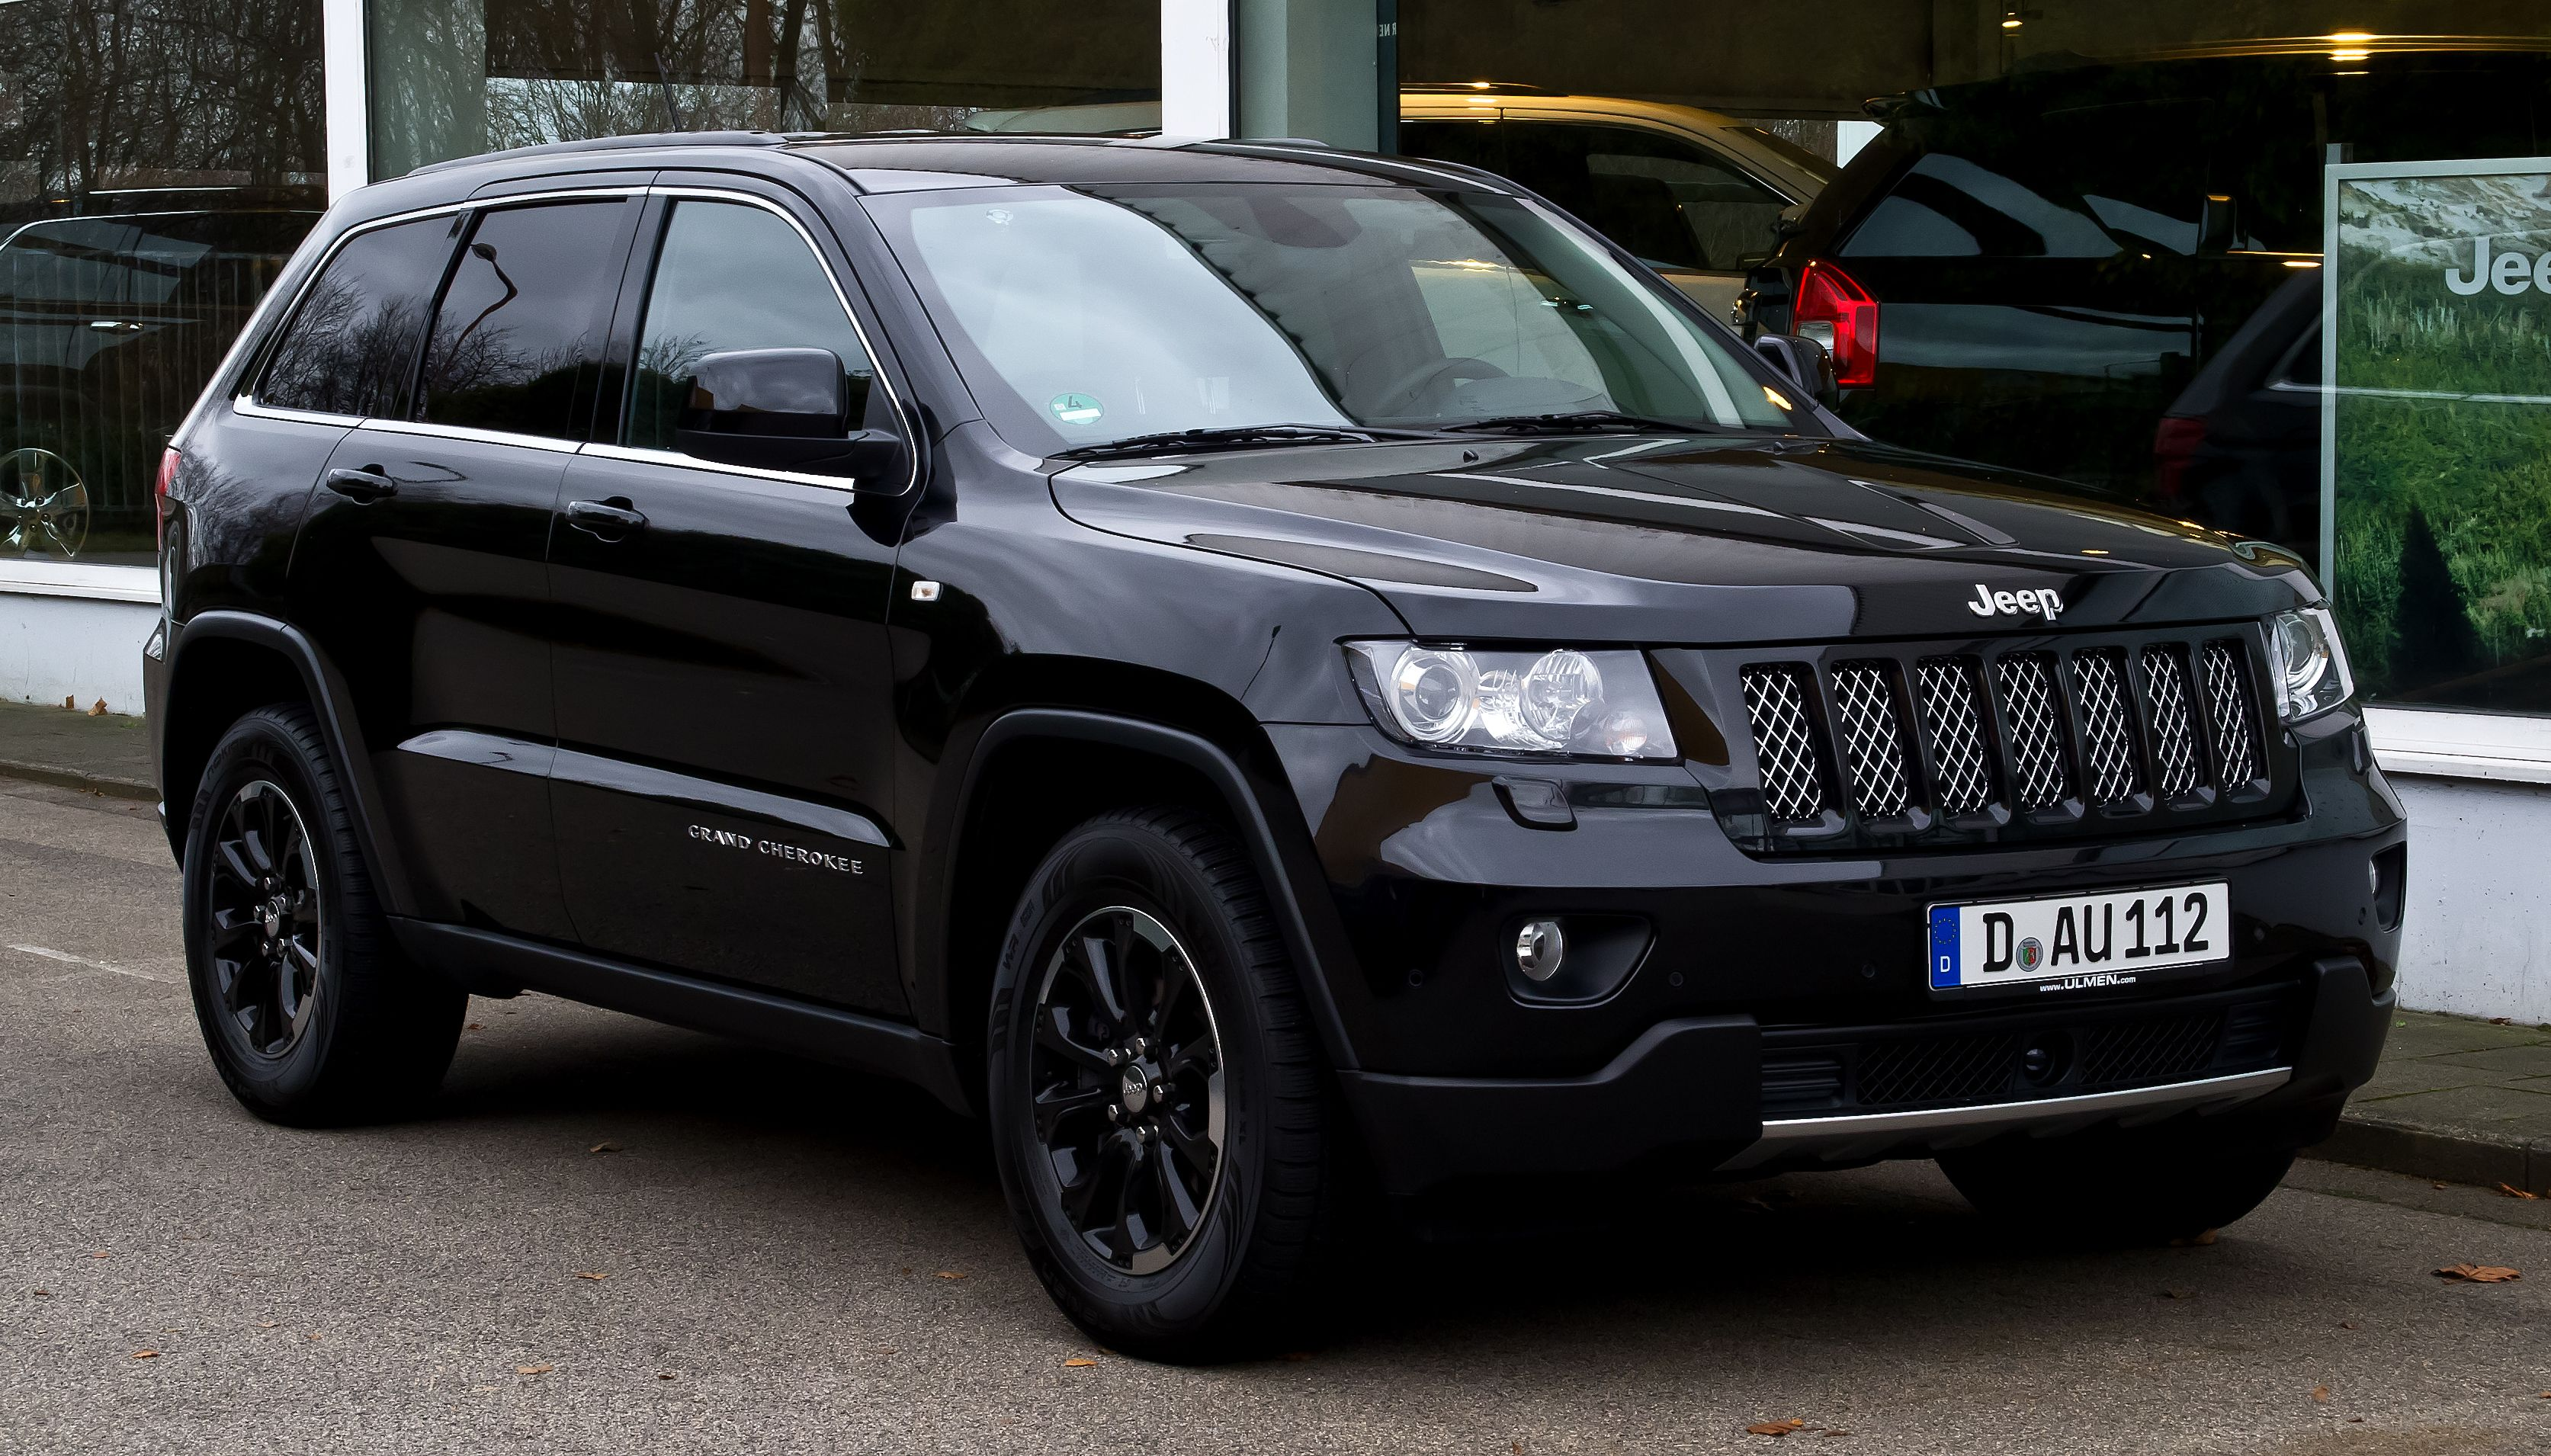 Custom Jeep Grand Cherokee Jeep Grand Cherokee 2013 Jeep Grand Cherokee Jeep Grand Cherokee Limited